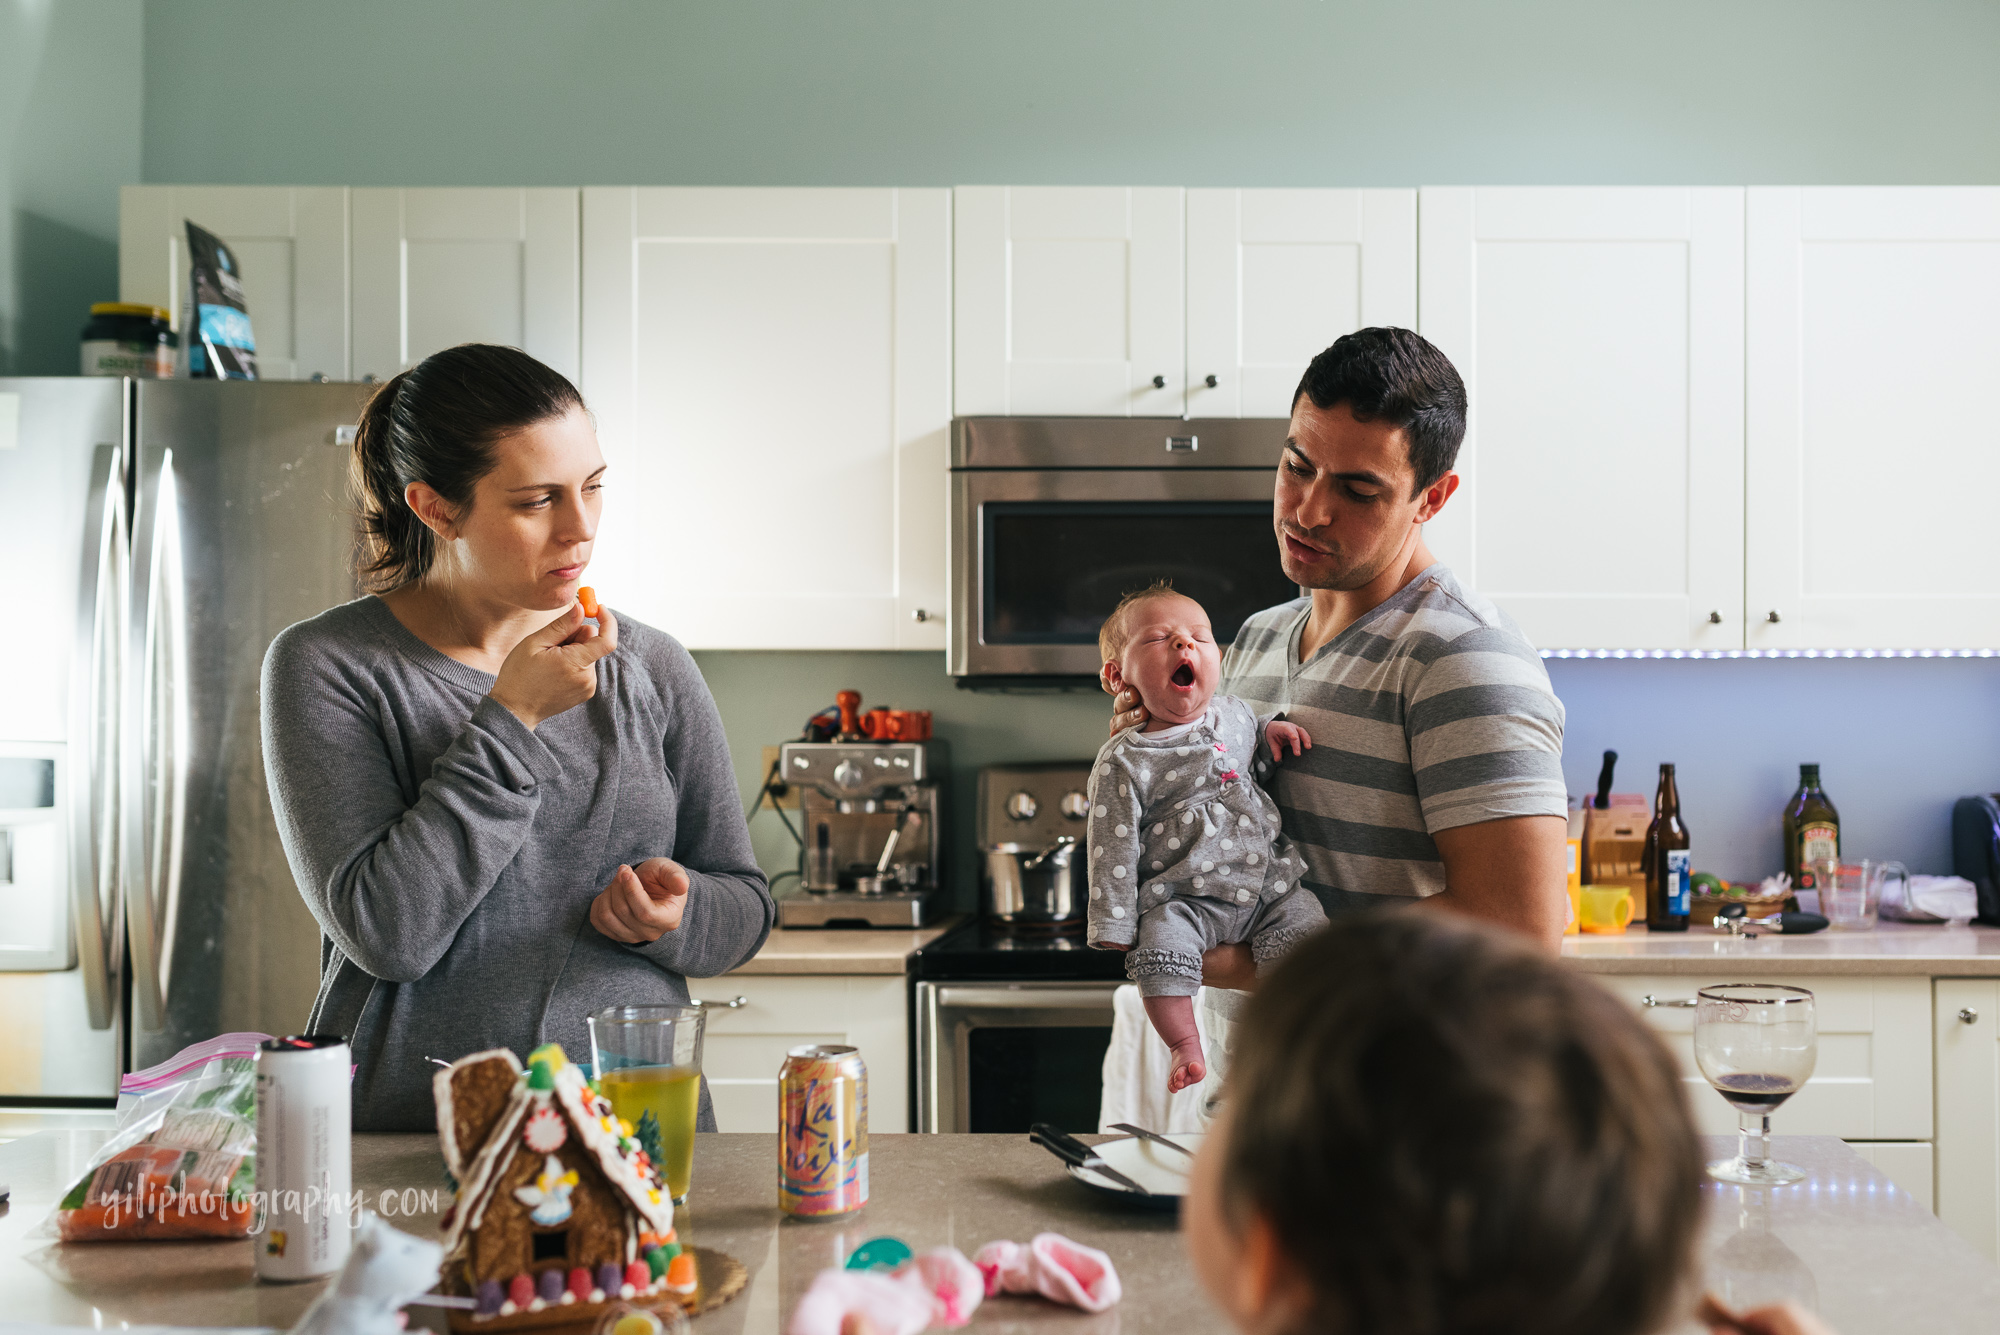 seattle family eating together in kitchen with newborn baby